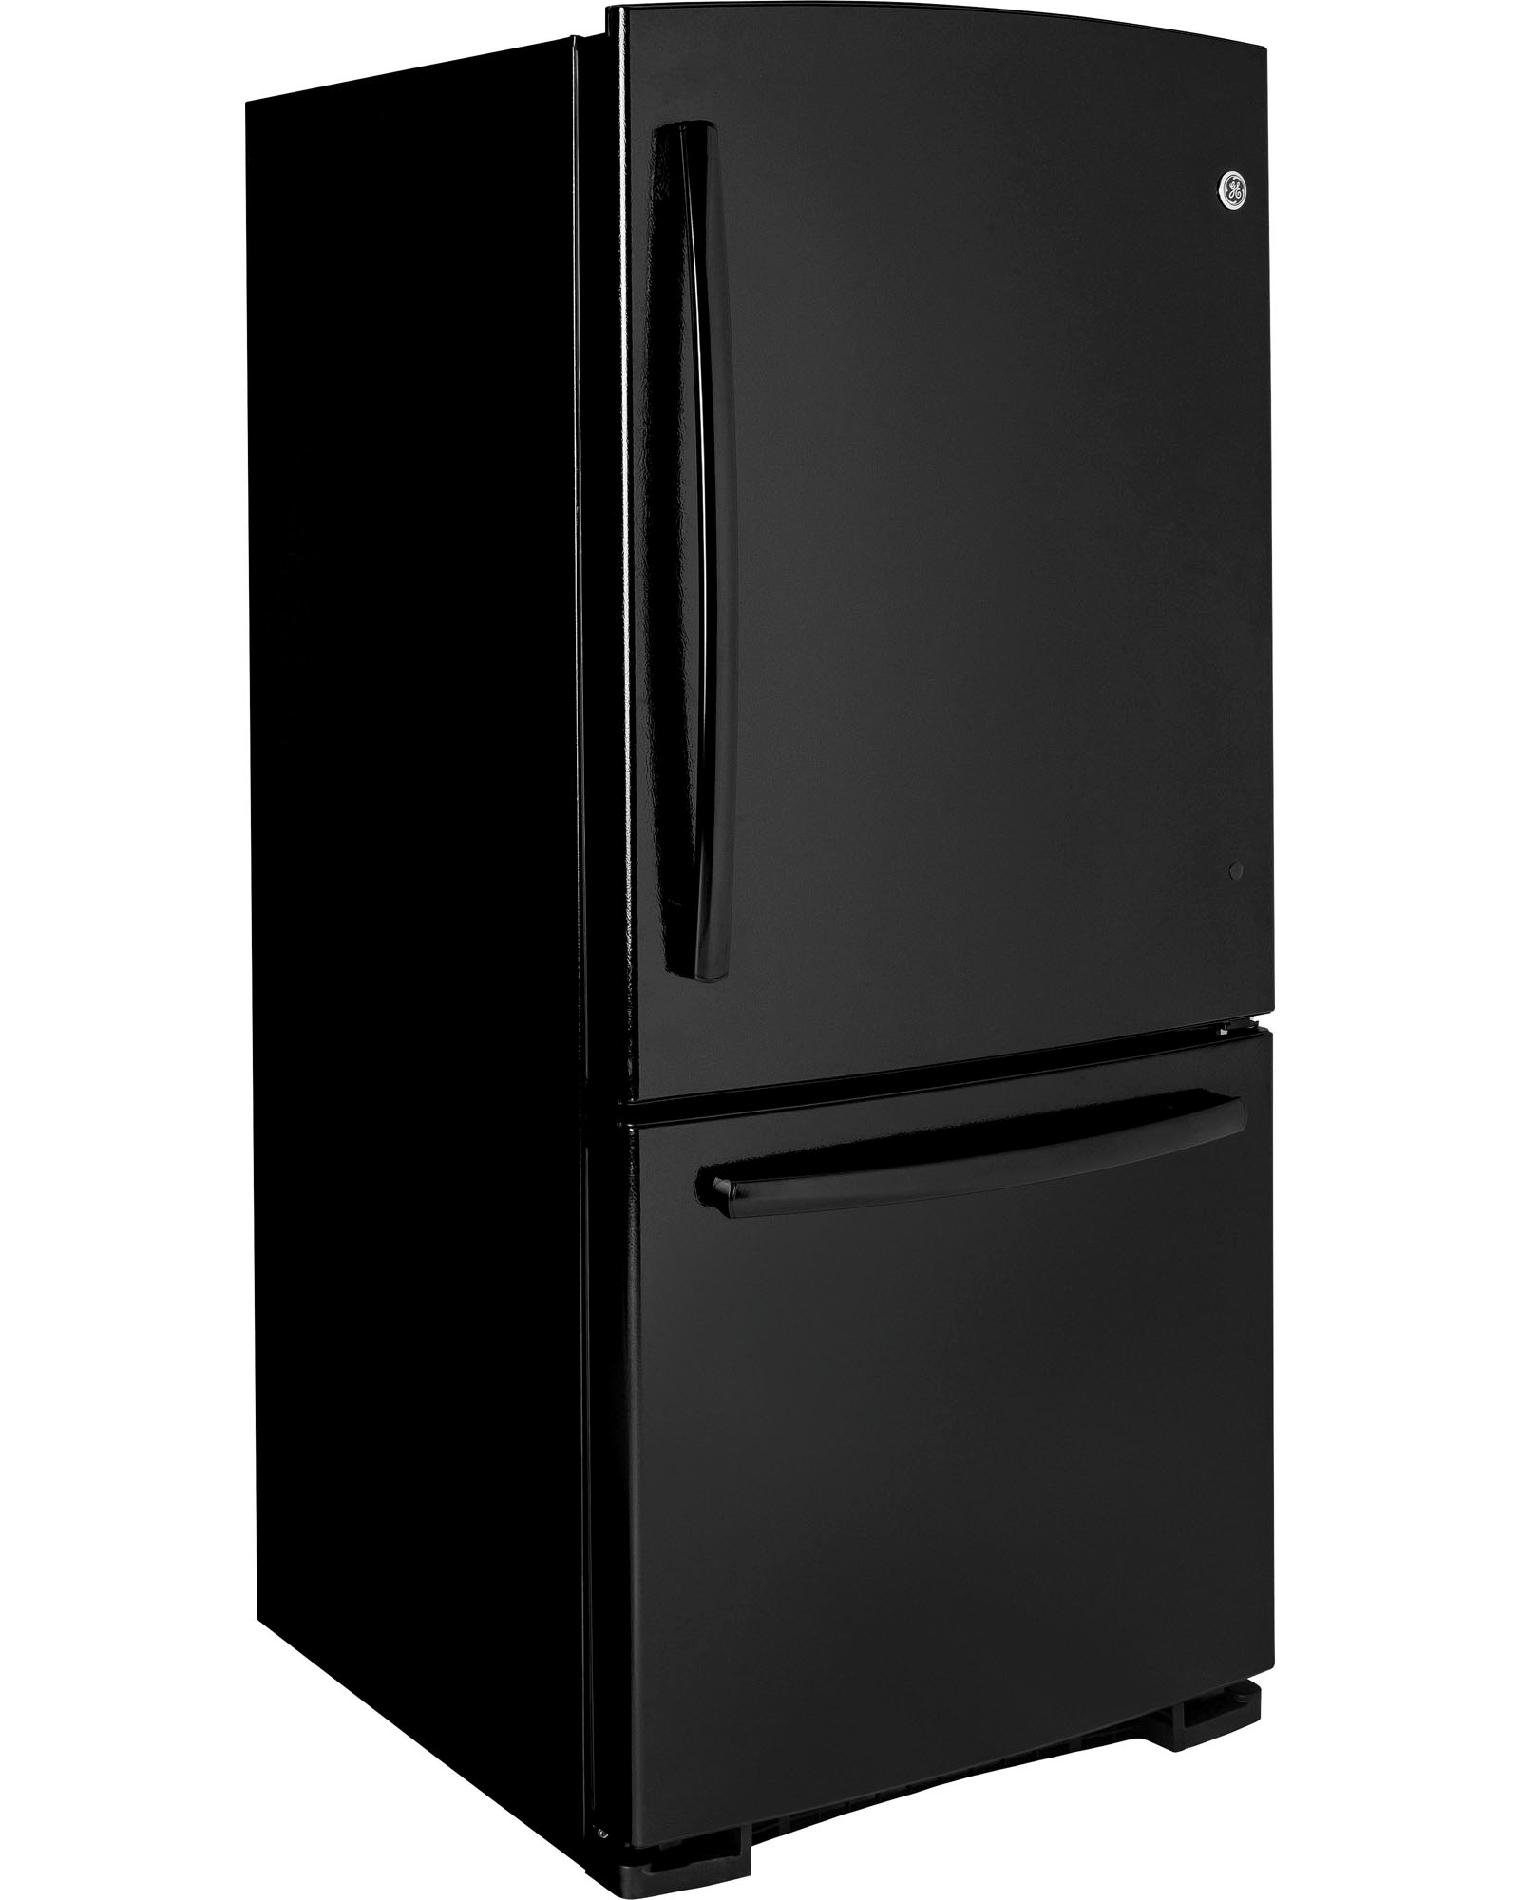 GE 20.2 cu. ft. Built-in Bottom-Freezer Refrigerator - Black